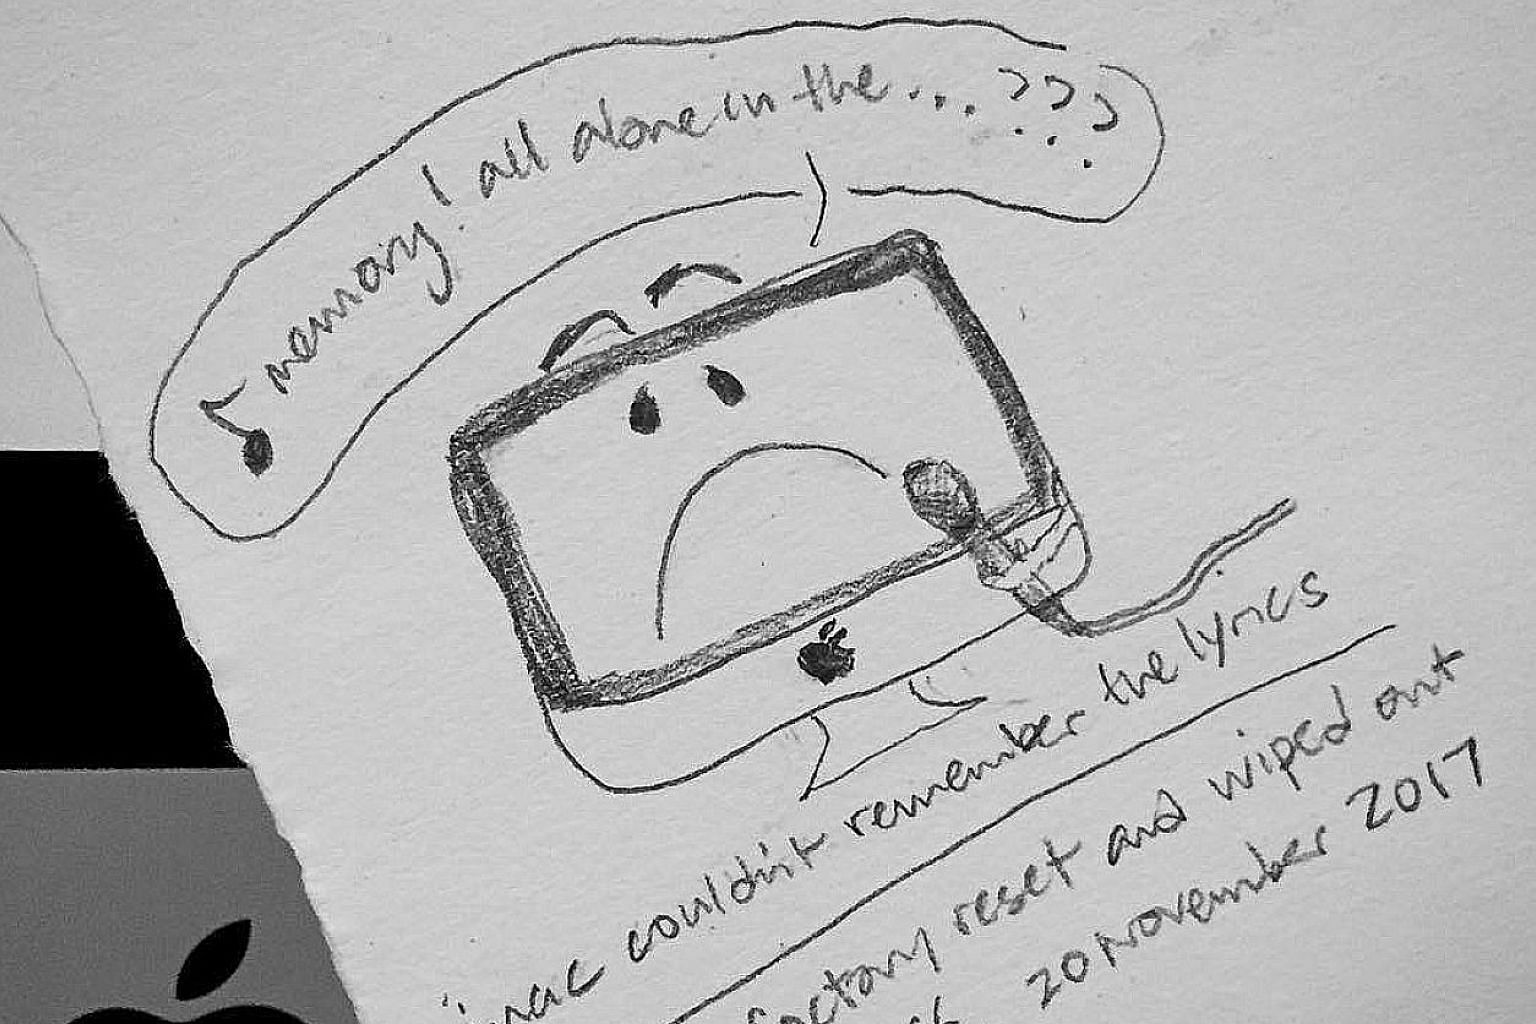 A doodle by the writer (@sseeingthings) about the masochistic pleasure of losing loads of photos and writing when 1TB of stuff on her iMac was wiped out. But a lot of data probably still exists in some cloud, old external drives, e-mails and devices.